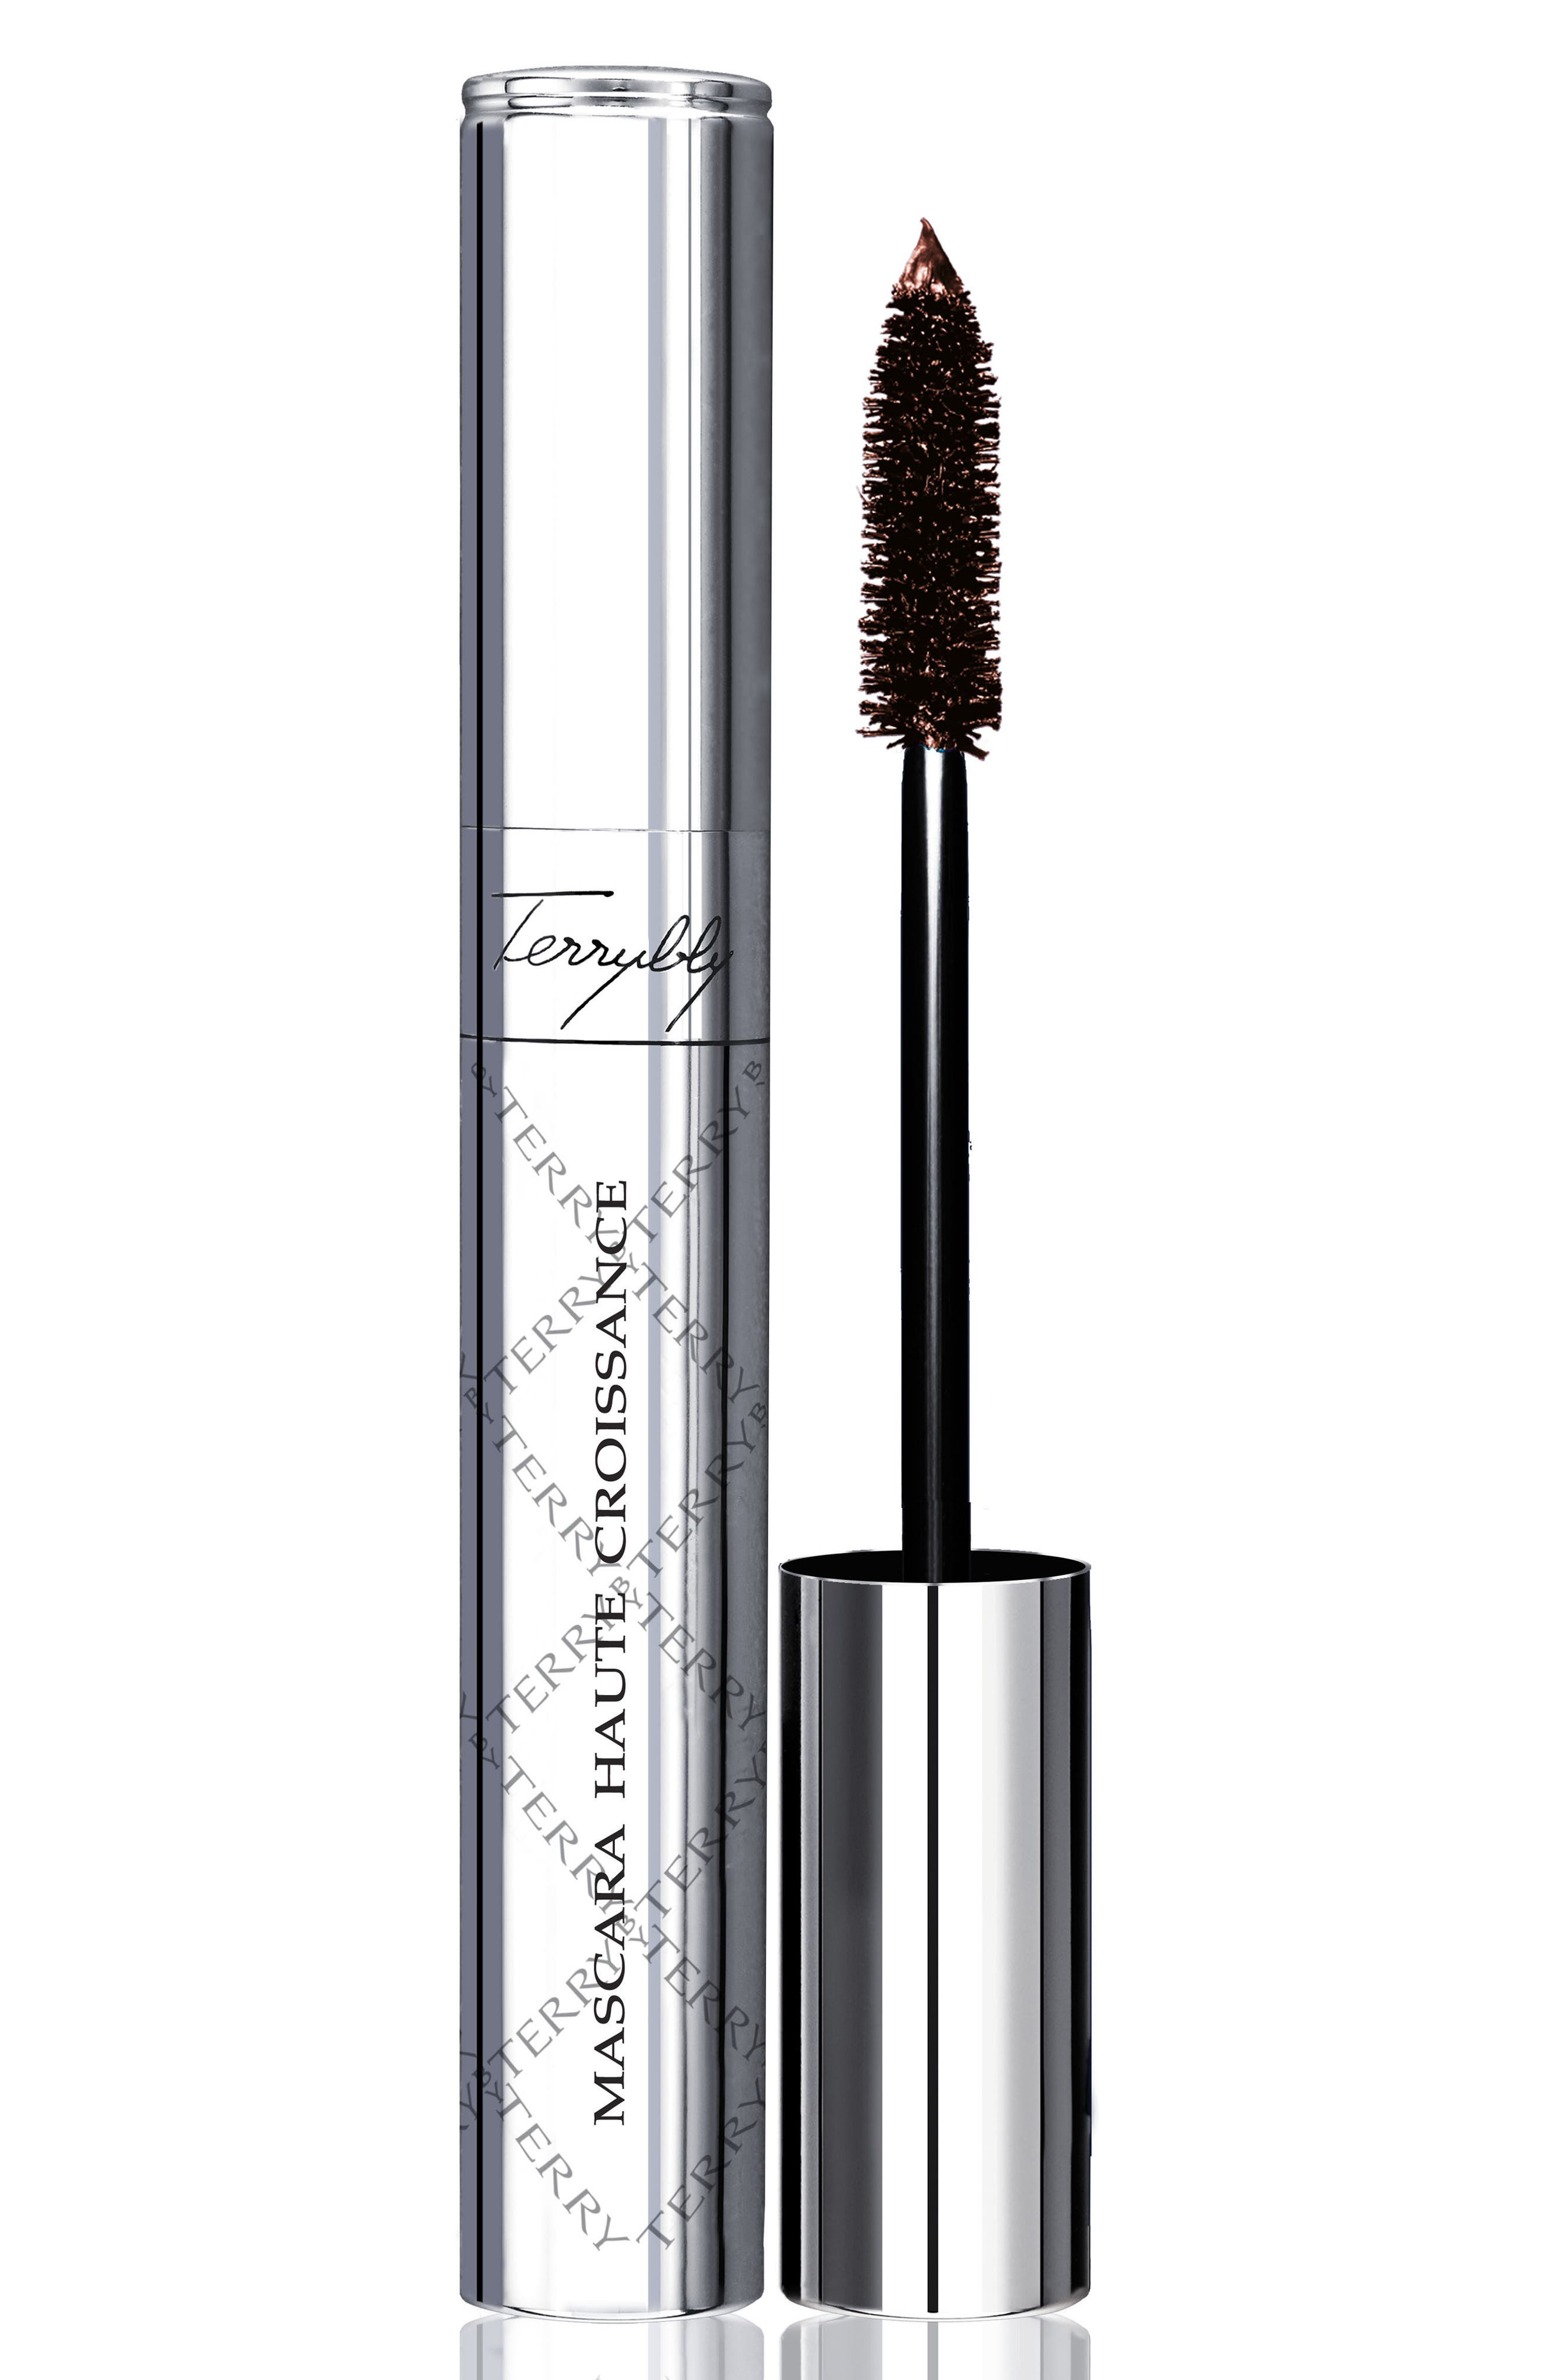 BY TERRY SPACE.NK.apothecary By Terry Mascara Terrybly, Main, color, MOKA BROWN